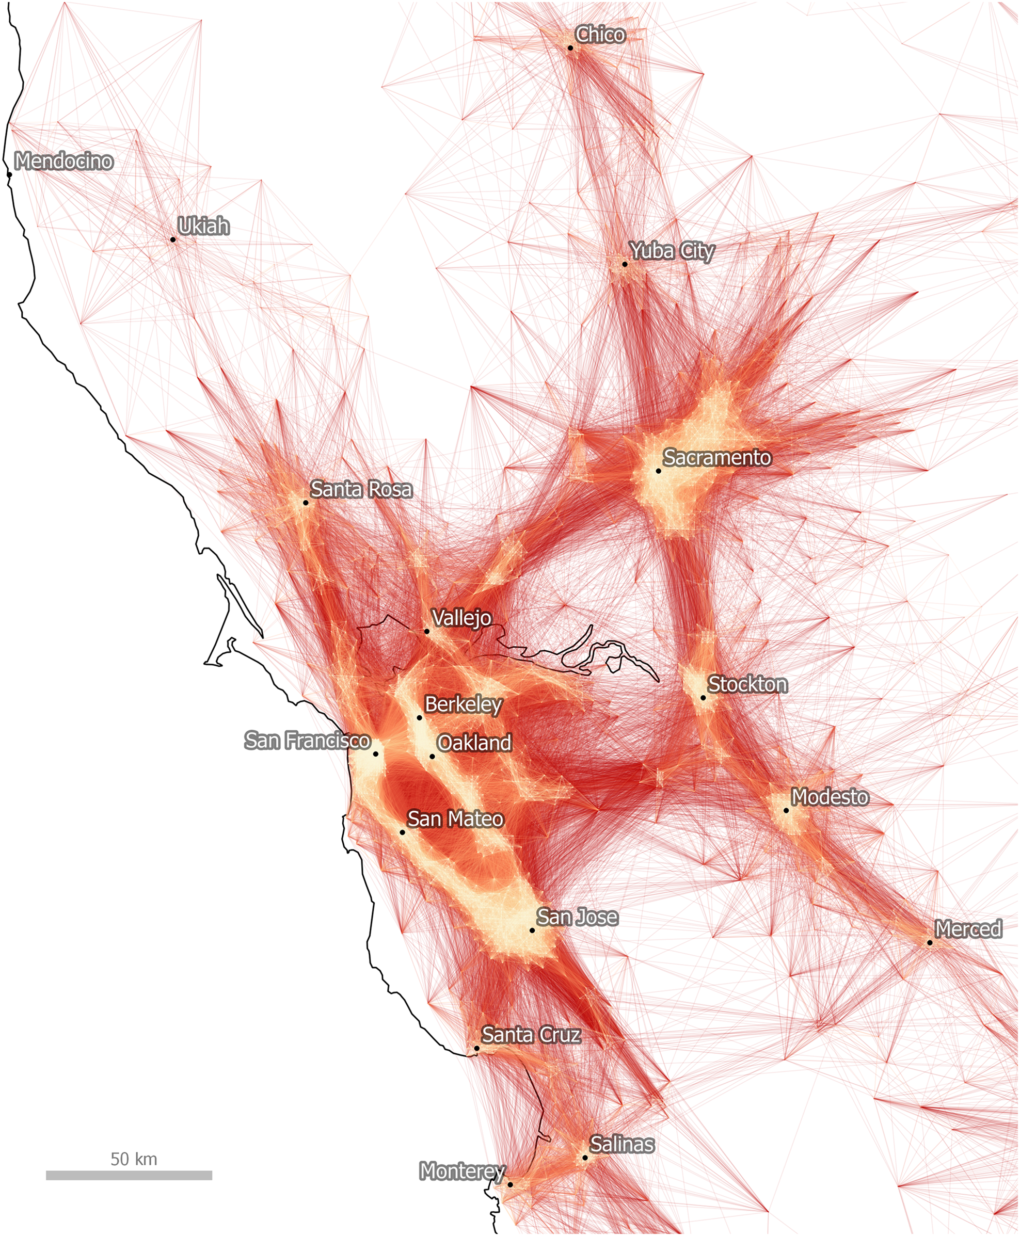 A heat map of commutes in Northern California reveals the urbanized core of the Bay Area, Sacramento and Central Valley cities, as well as the workers who flow into and out of each. Source: Dash Nelson G, Rae A (2016) An Economic Geography of the United States: From Commutes to Megaregions. PLoS ONE 11(11): e0166083. https://doi.org/10.1371/journal.pone.0166083